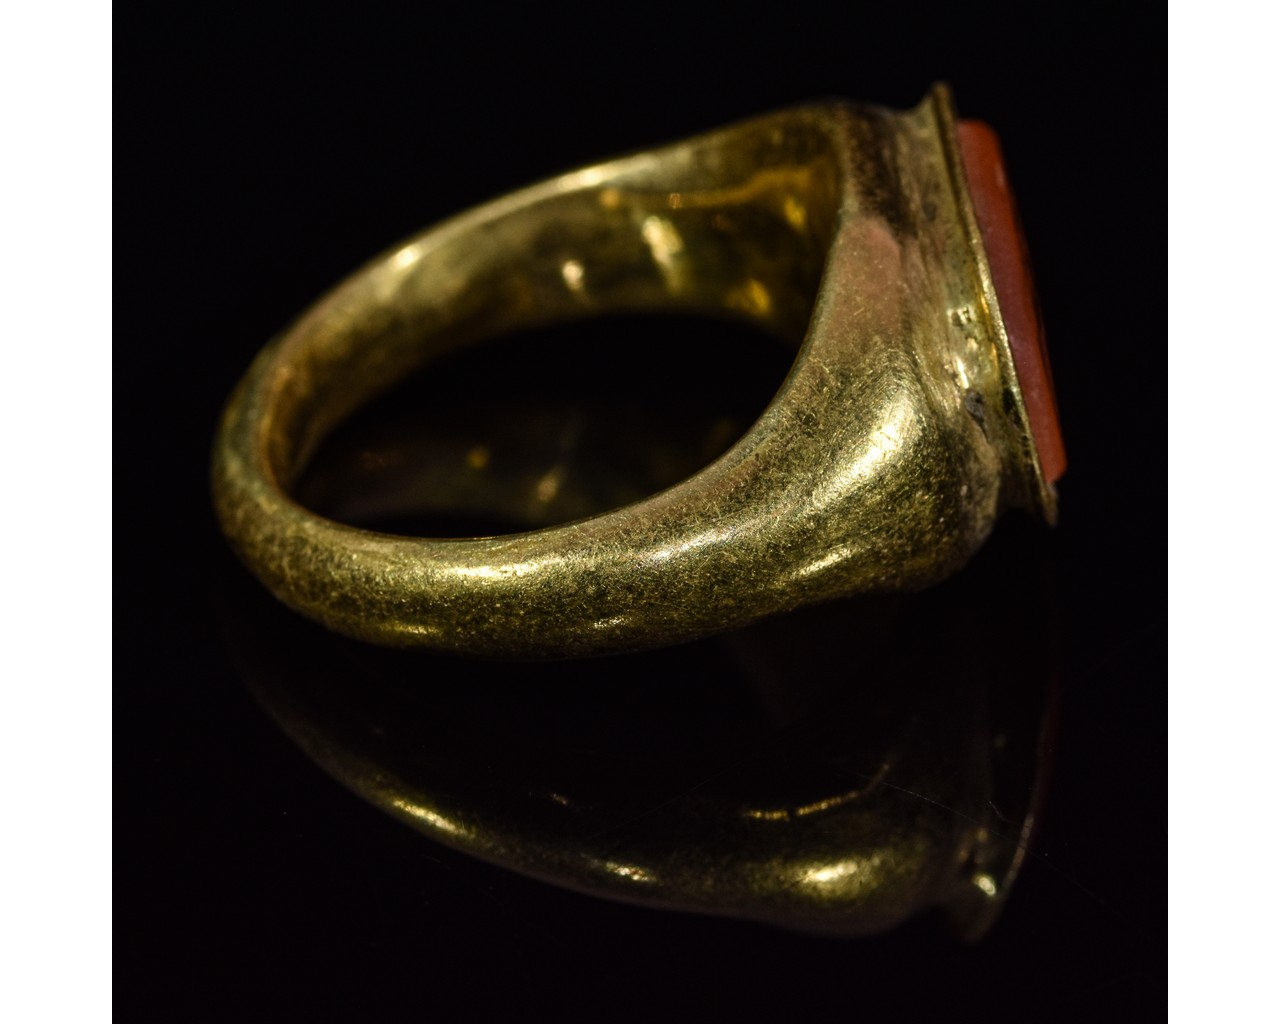 Lot 42 - ROMAN GOLD INTAGLIO RING - TWO FIGHTING ROOSTERS